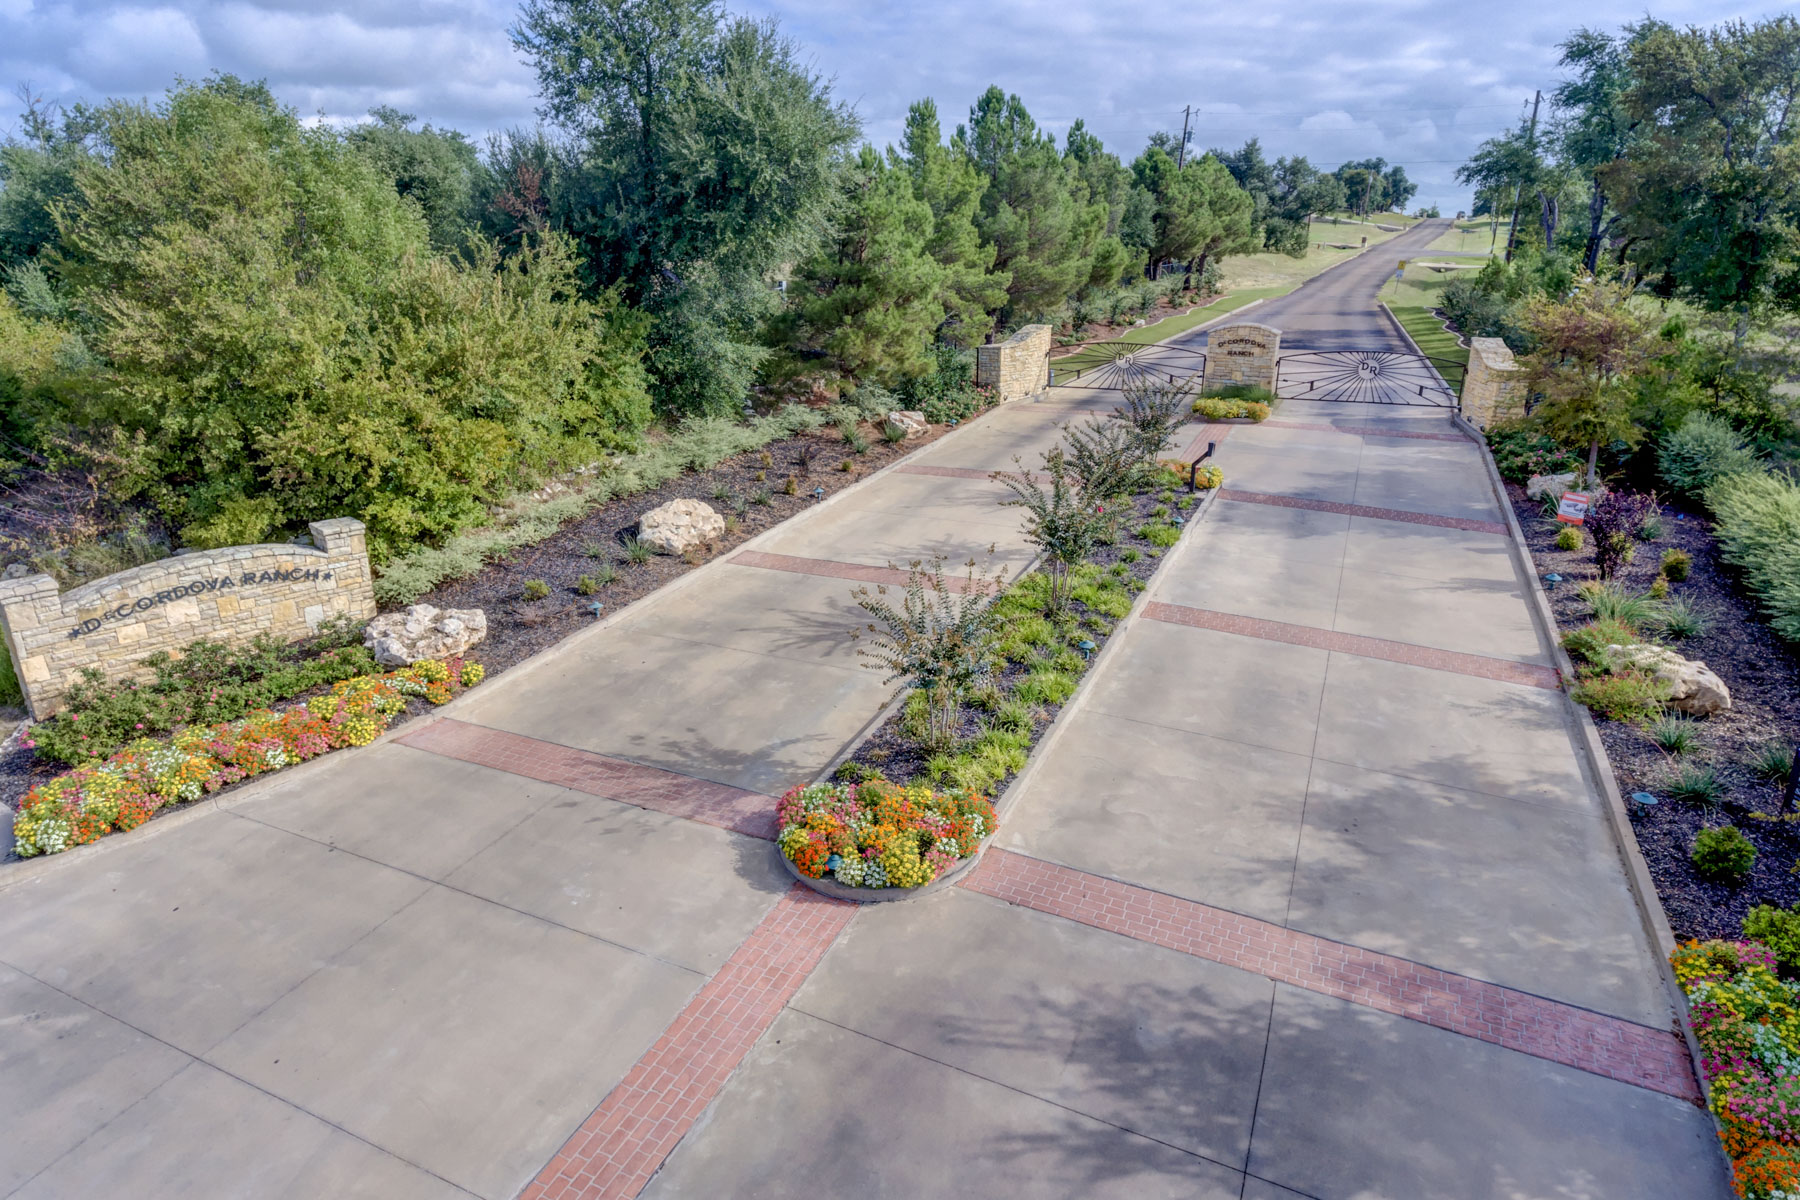 Land for Sale at 3826 Legend Trail 3826 Legend Trail Granbury, Texas 76049 United States